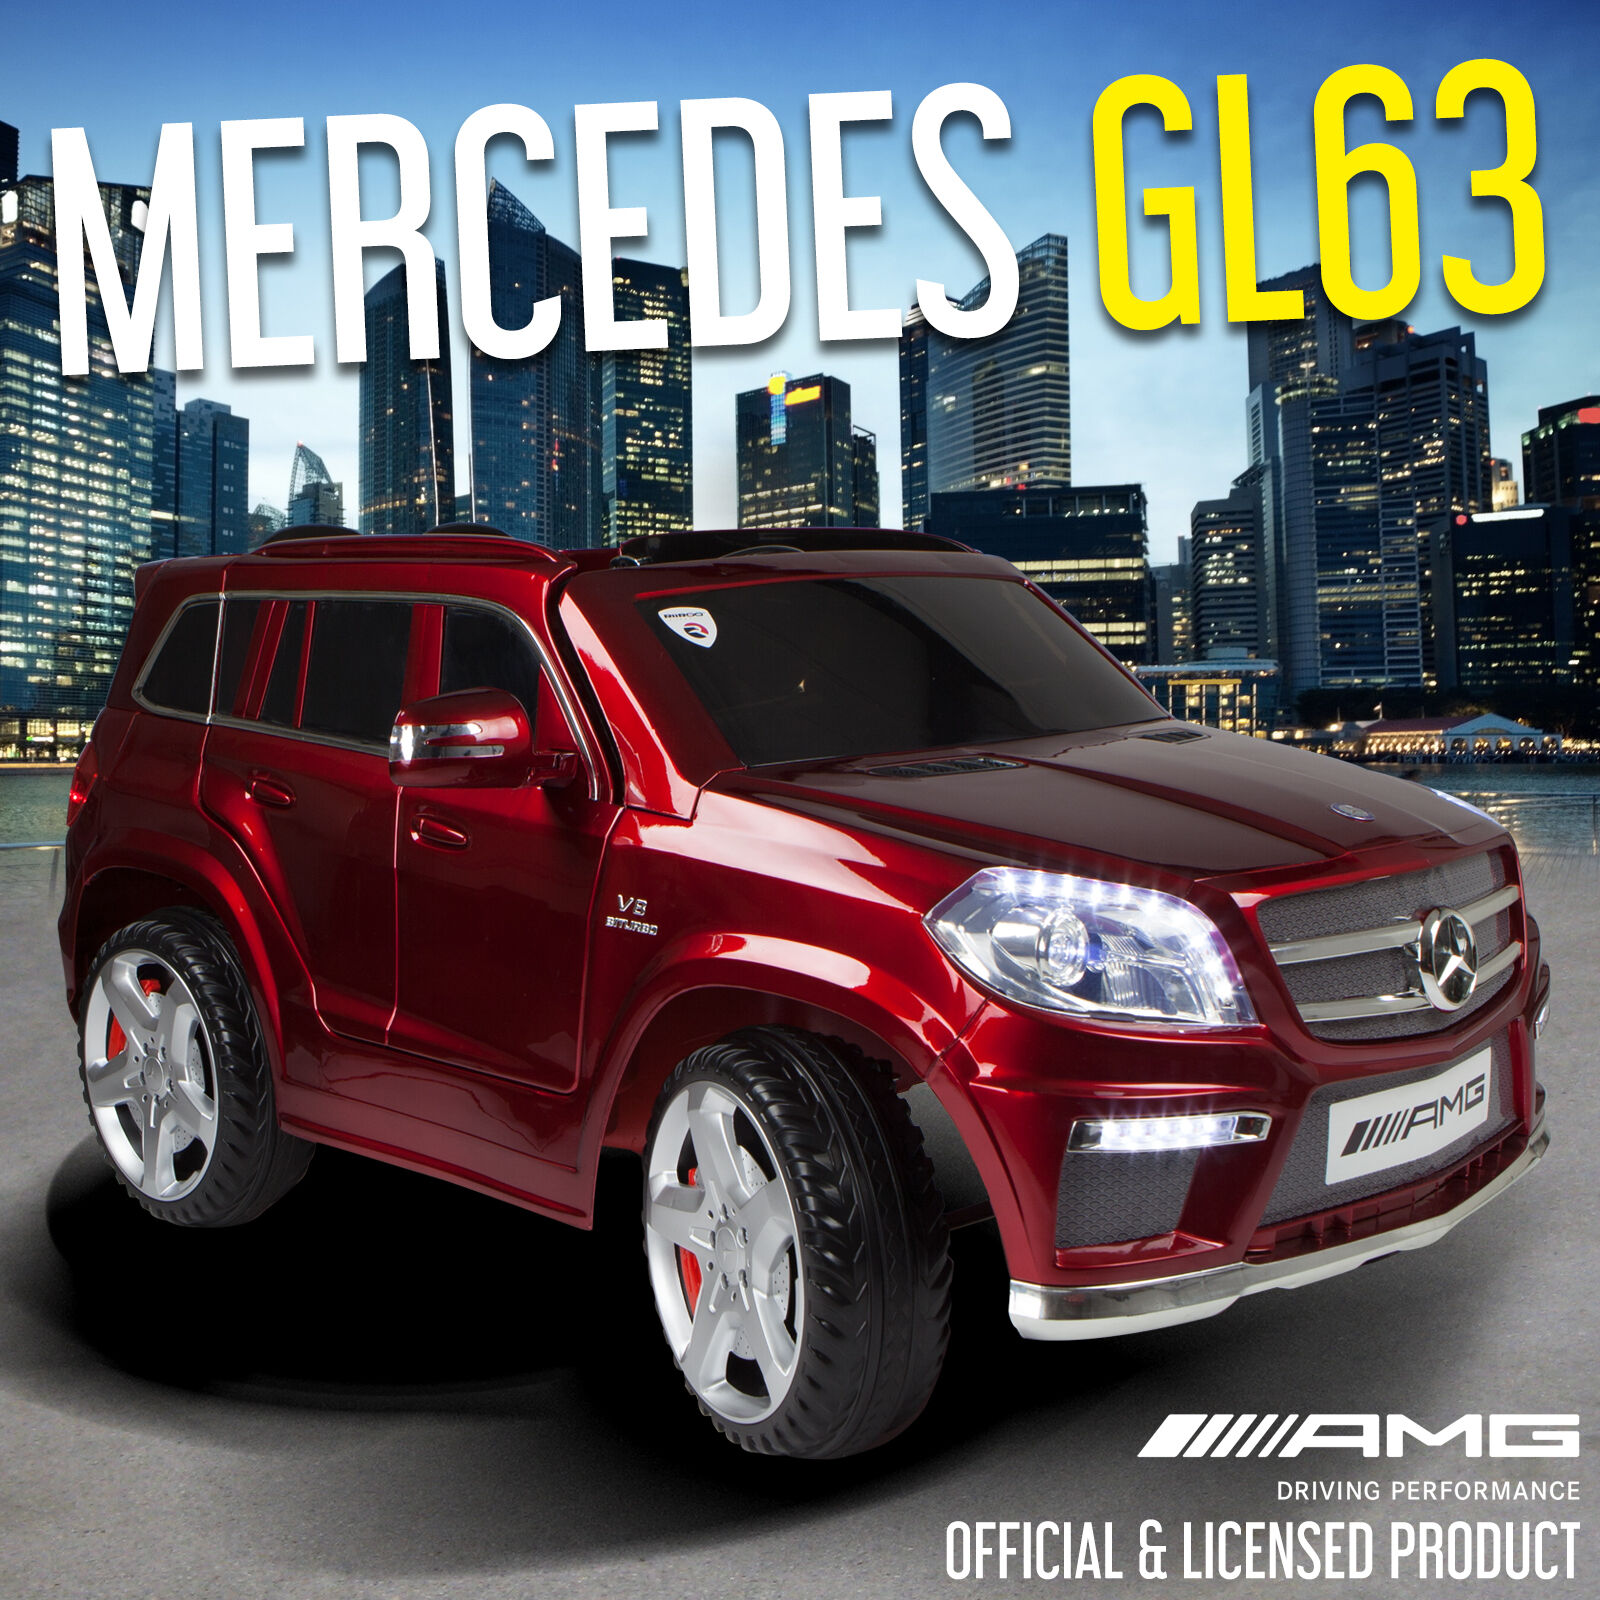 Mercedes Benz GL63 AMG Licensed 12V Kids Ride On Car Battery Remote Control Cars